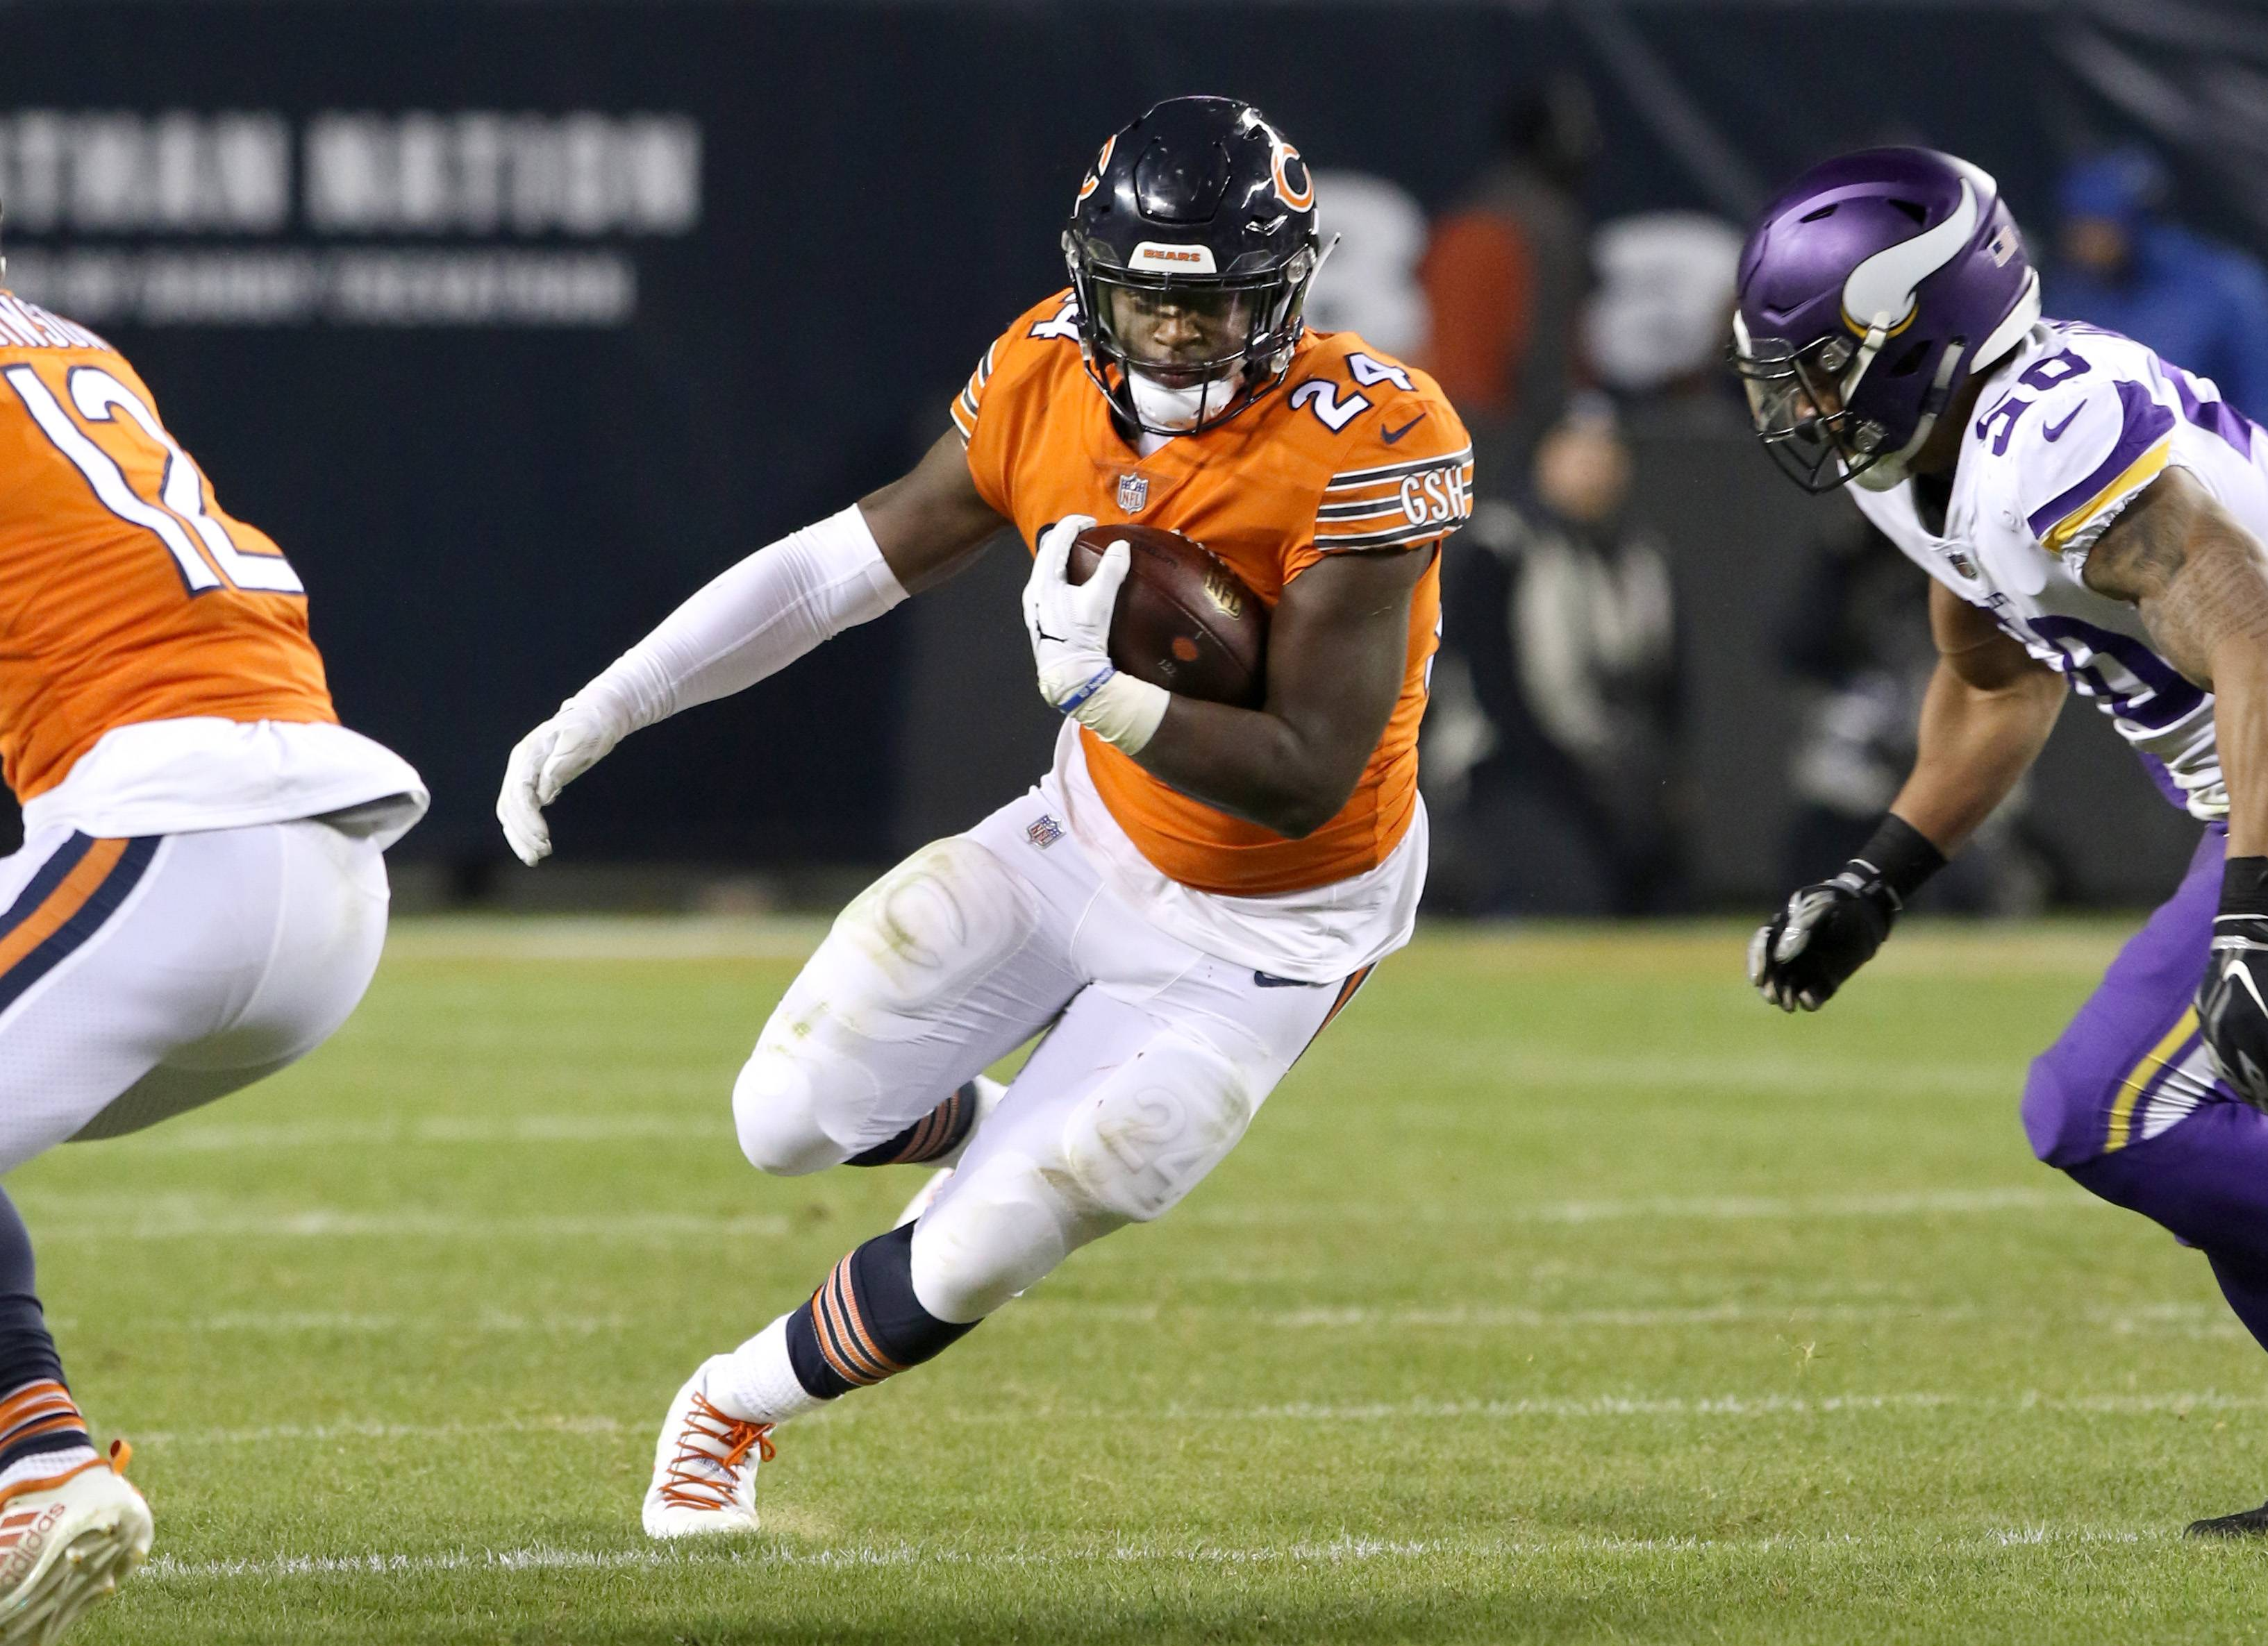 Chicago Bears running back Jordan Howard finds some running room during the game against the Minnesota Vikings Sunday night at Soldier Field in Chicago.